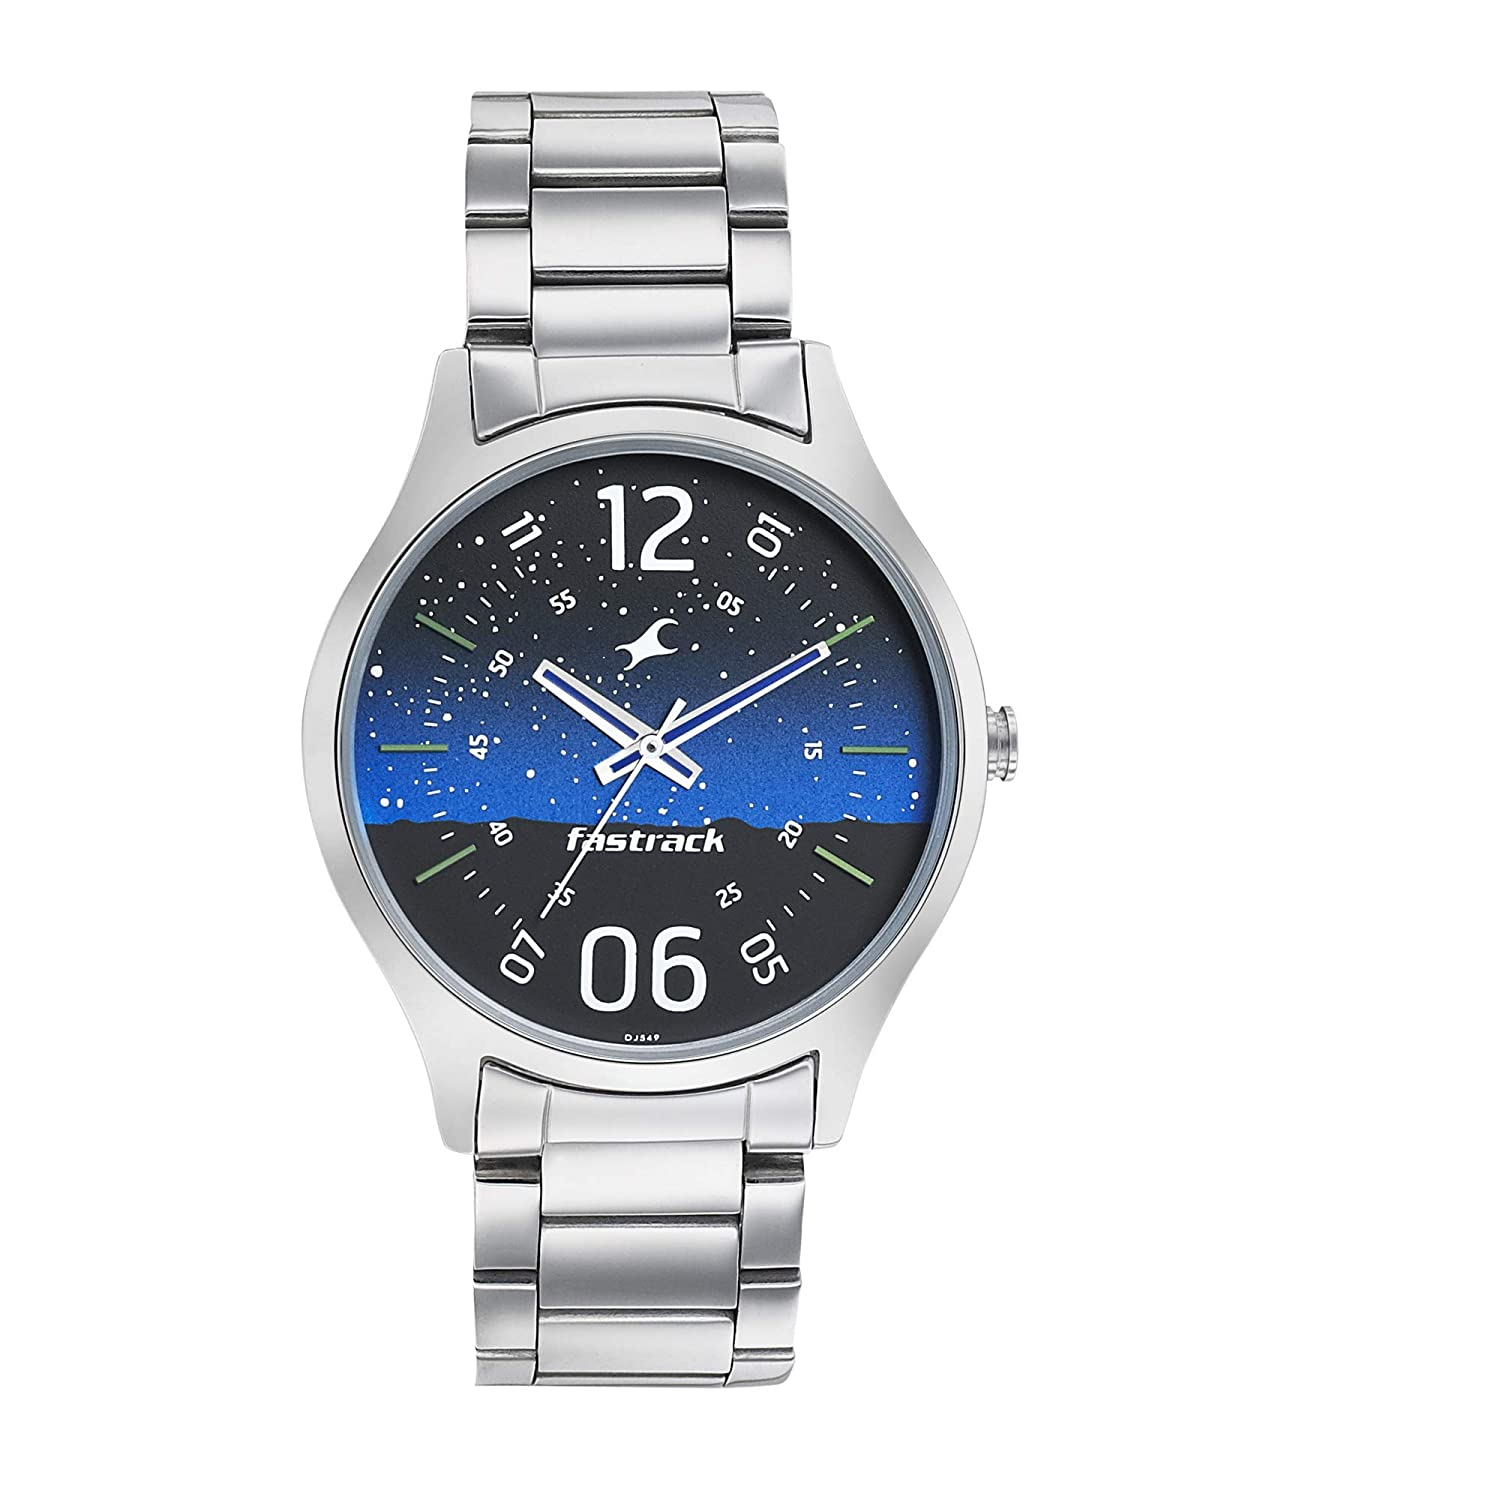 Top 12 Best Fastrack Watches under the budget of 3000 rupees